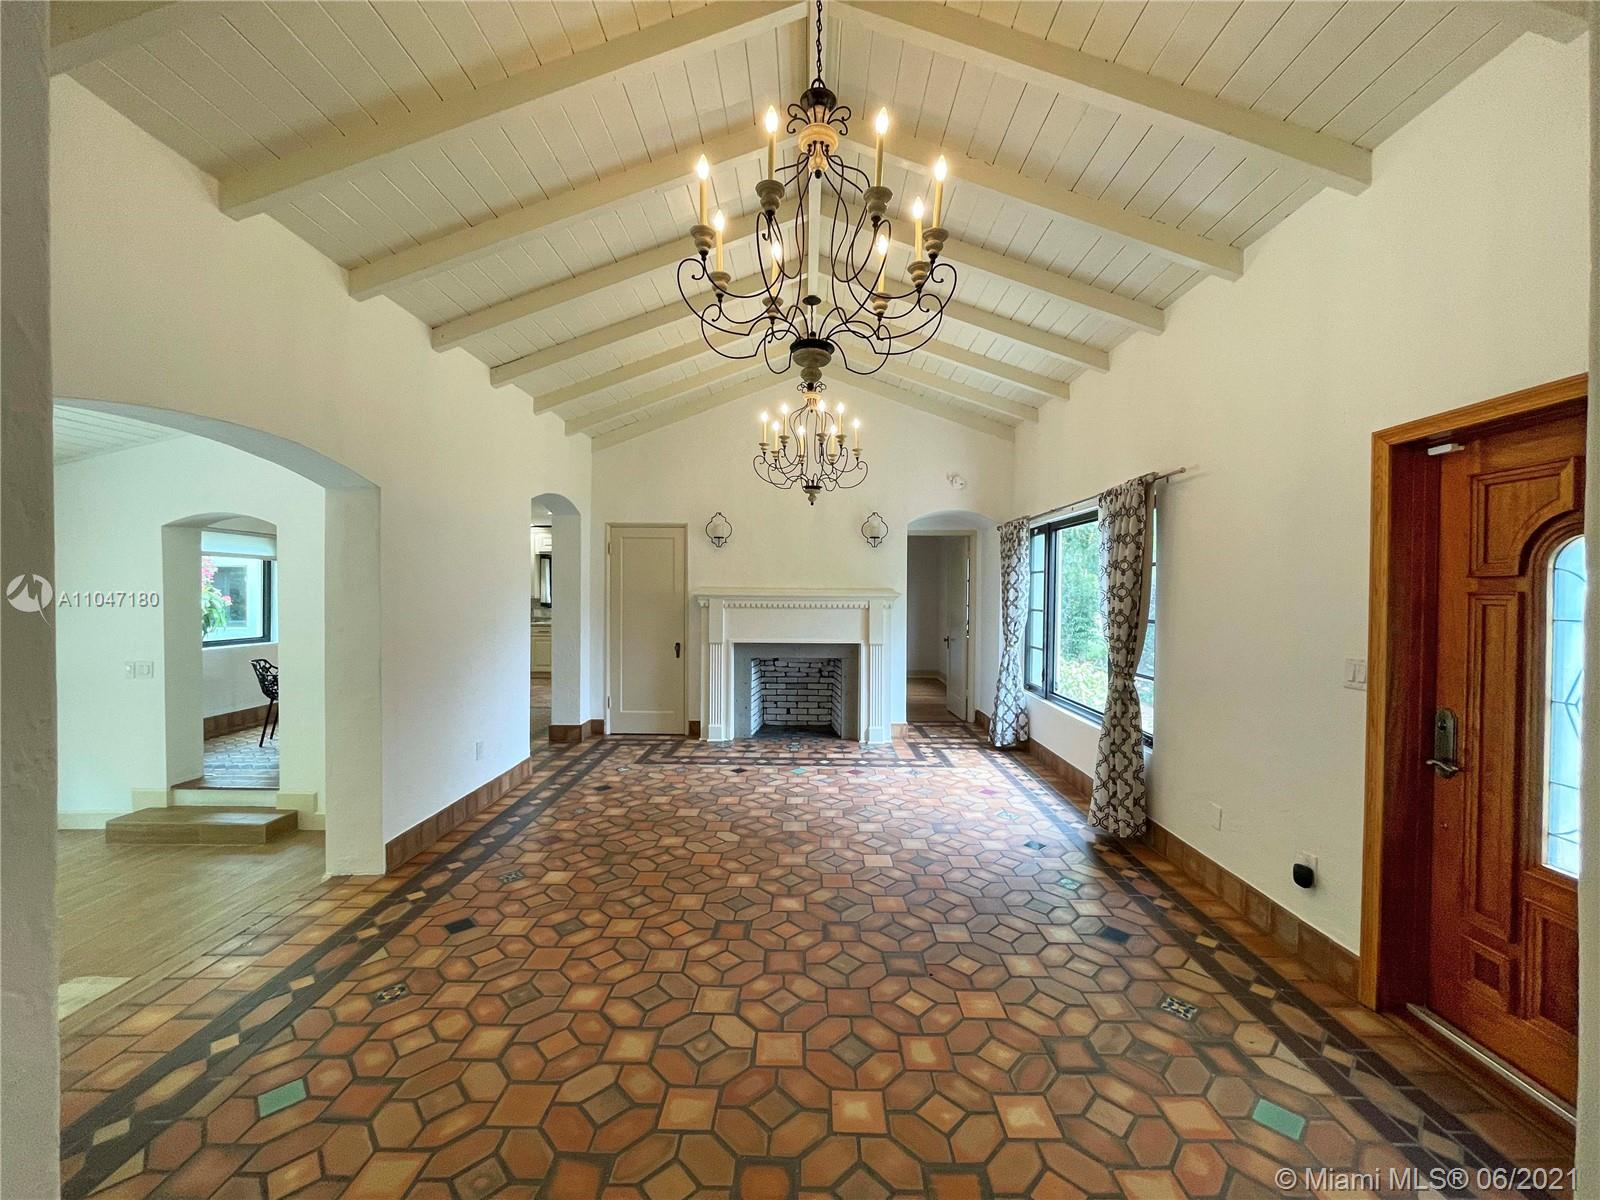 Beautiful 1930's Spanish/Art Deco 3BD/2.5BA, designed by renowned architect Robert Fitch Smith, on large, lush 10,000 sf lot. Lovingly remodeled for modern living, while preserving its many charming details: dramatic cathedral ceilings; original mosaic tile floors; fireplace; living, family & dining rooms; bonus maid's room or office; laundry; garage. Open kitchen has gorgeous Brazilian granite counters, SS appliances & built-in wine cooler. A backyard pavilion, festooned with speakers & festive lights, has an outdoor kitchen w/gas & charcoal grills & more. Fabulously landscaped yard has plenty of space for a pool or croquet. House is fully hurricane-protected w/impact glass & doors, plus a full-house generator. Great location, on a quiet street, but walking distance to shopping & dining!